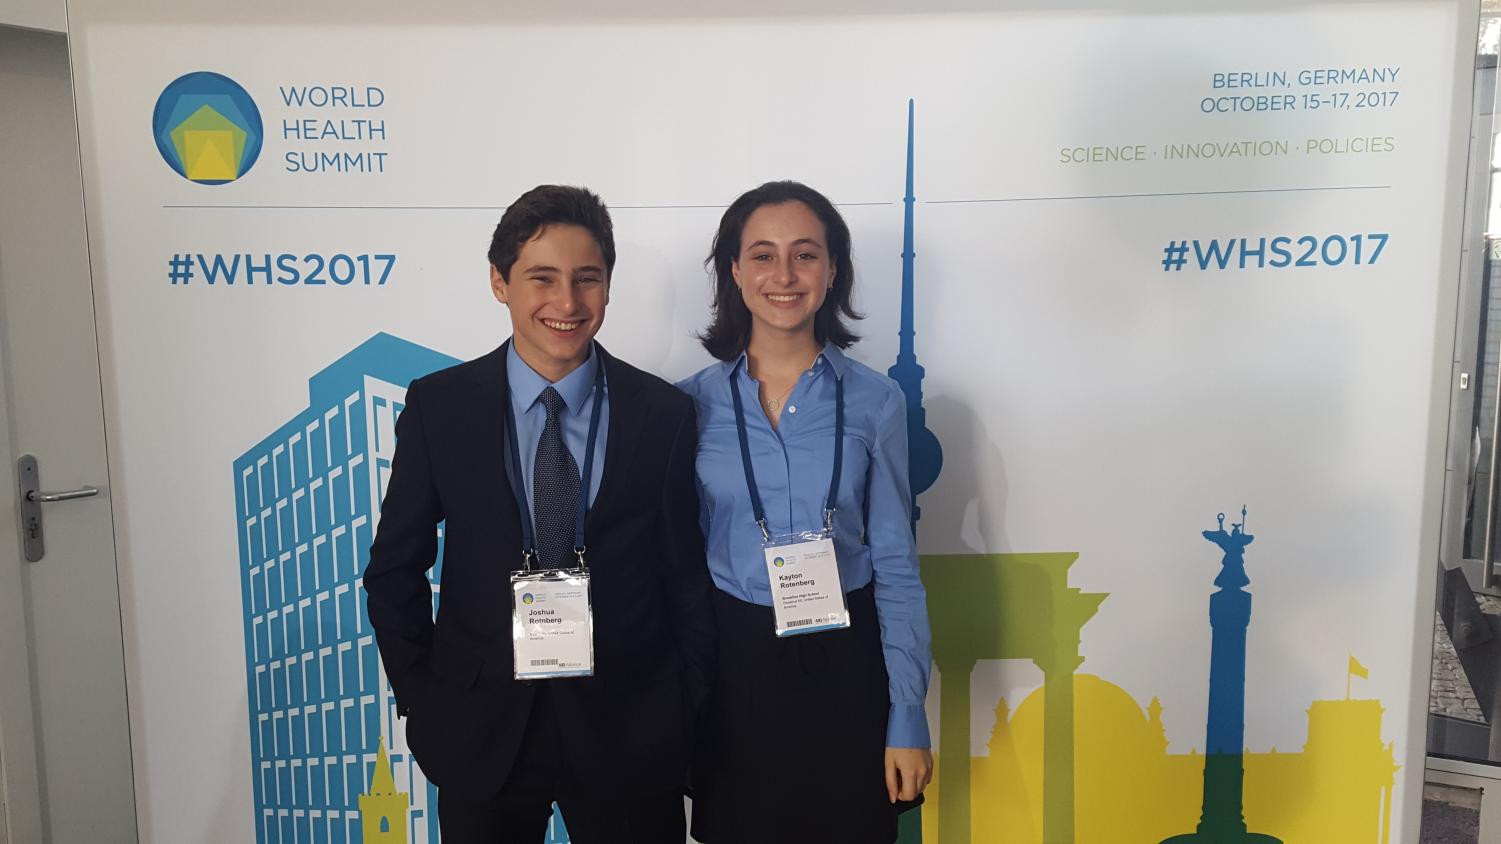 Juniors Josh and Kayton Rotenberg were participants in the high school's trip to Berlin last October for the World Health Summit. This was just one of many trips the Global Leadership program runs.